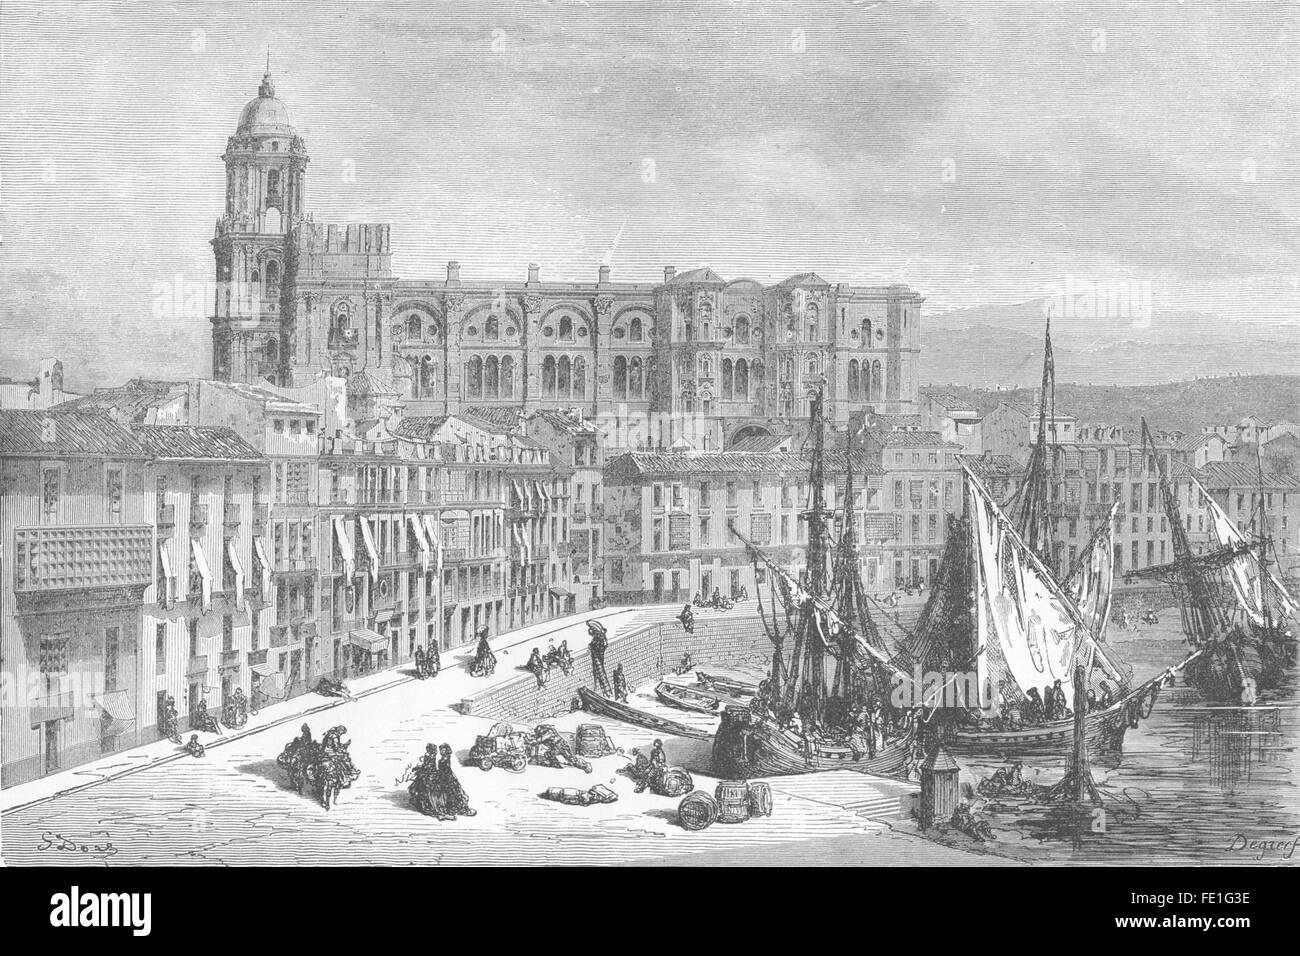 SPAIN: The Cathedral and Port of Malaga, antique print 1881 - Stock Image